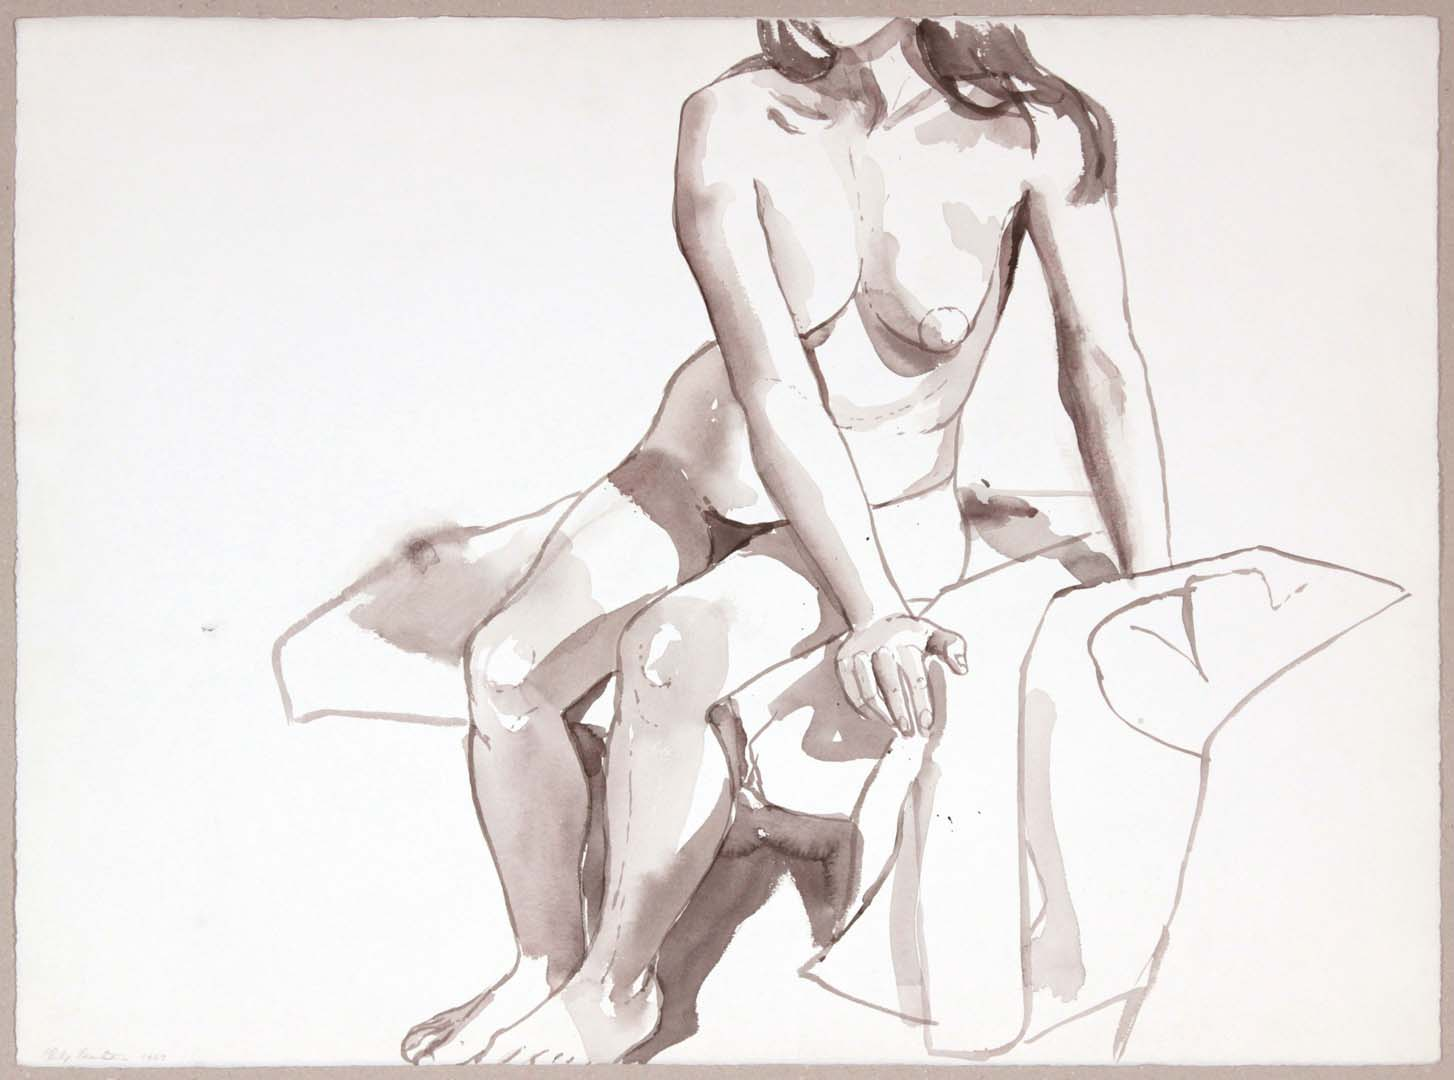 1967 Seated Nude with Arms to the Side Wash 22.125 x 29.875